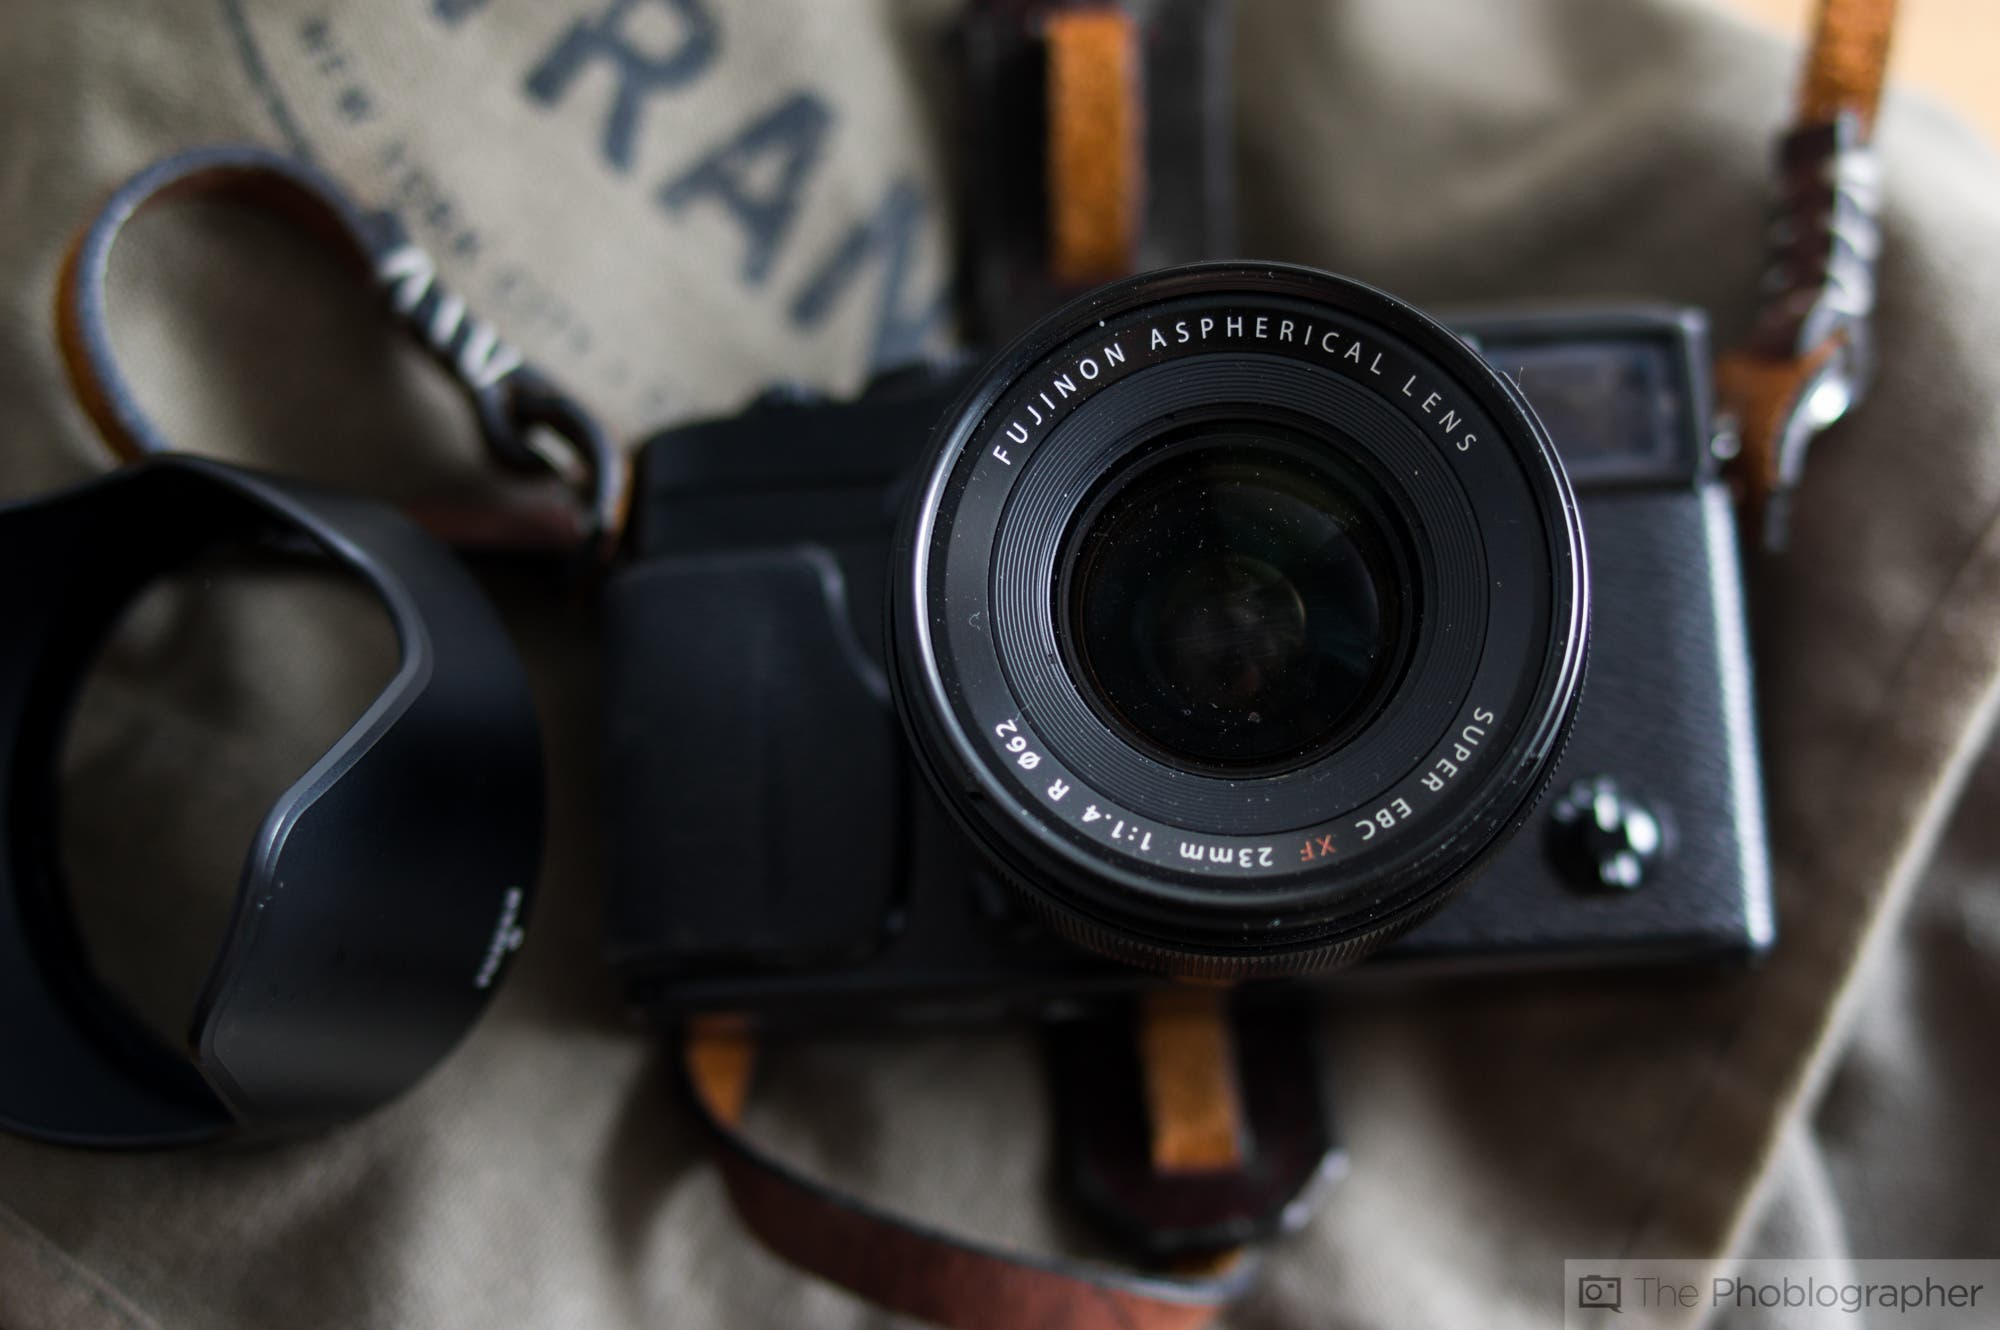 Fujifilm X Pro 2 Said to be Coming in Late 2015